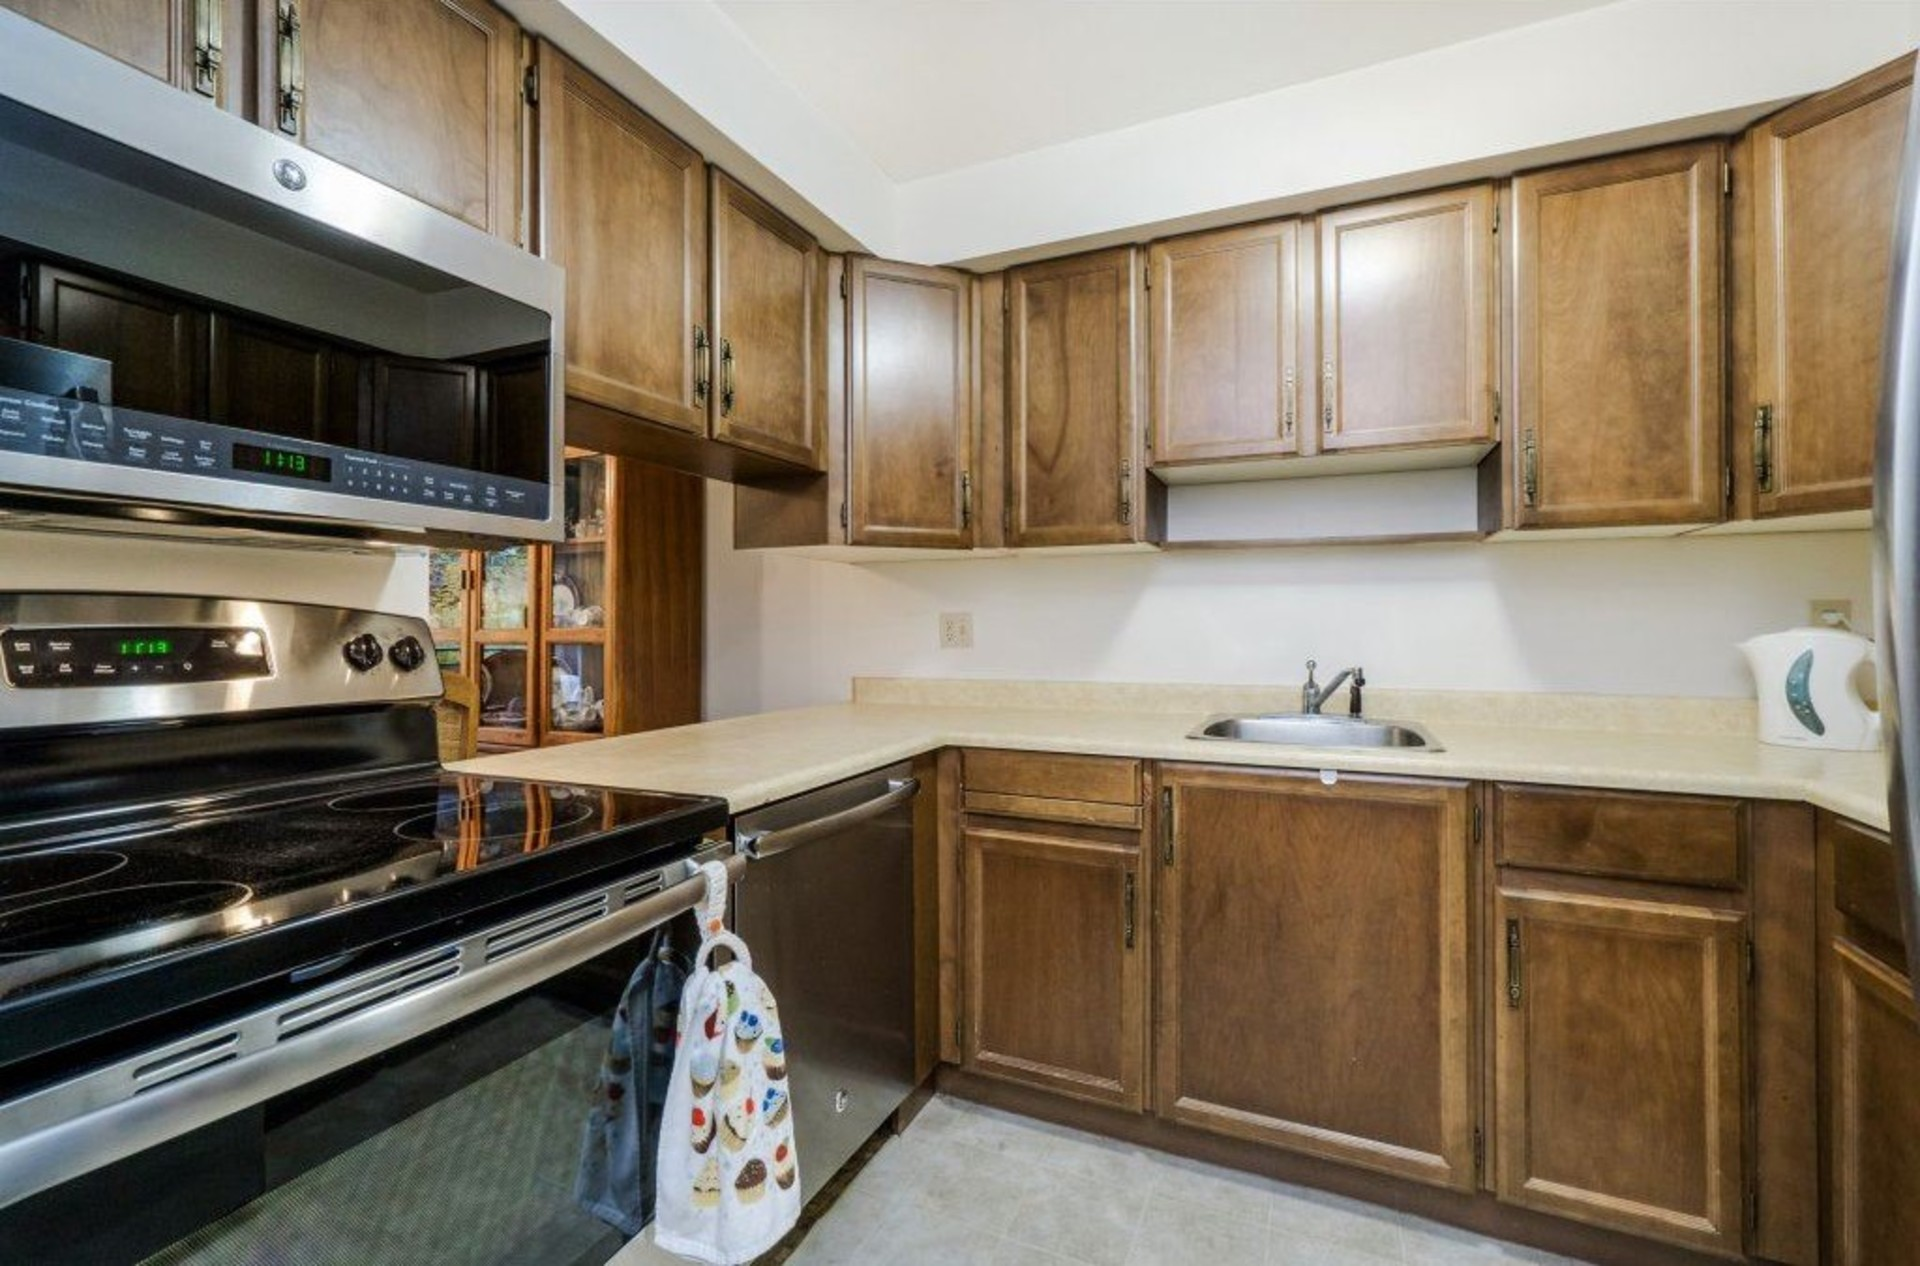 262244789-10 at 301 - 444 Lonsdale Avenue, North Vancouver